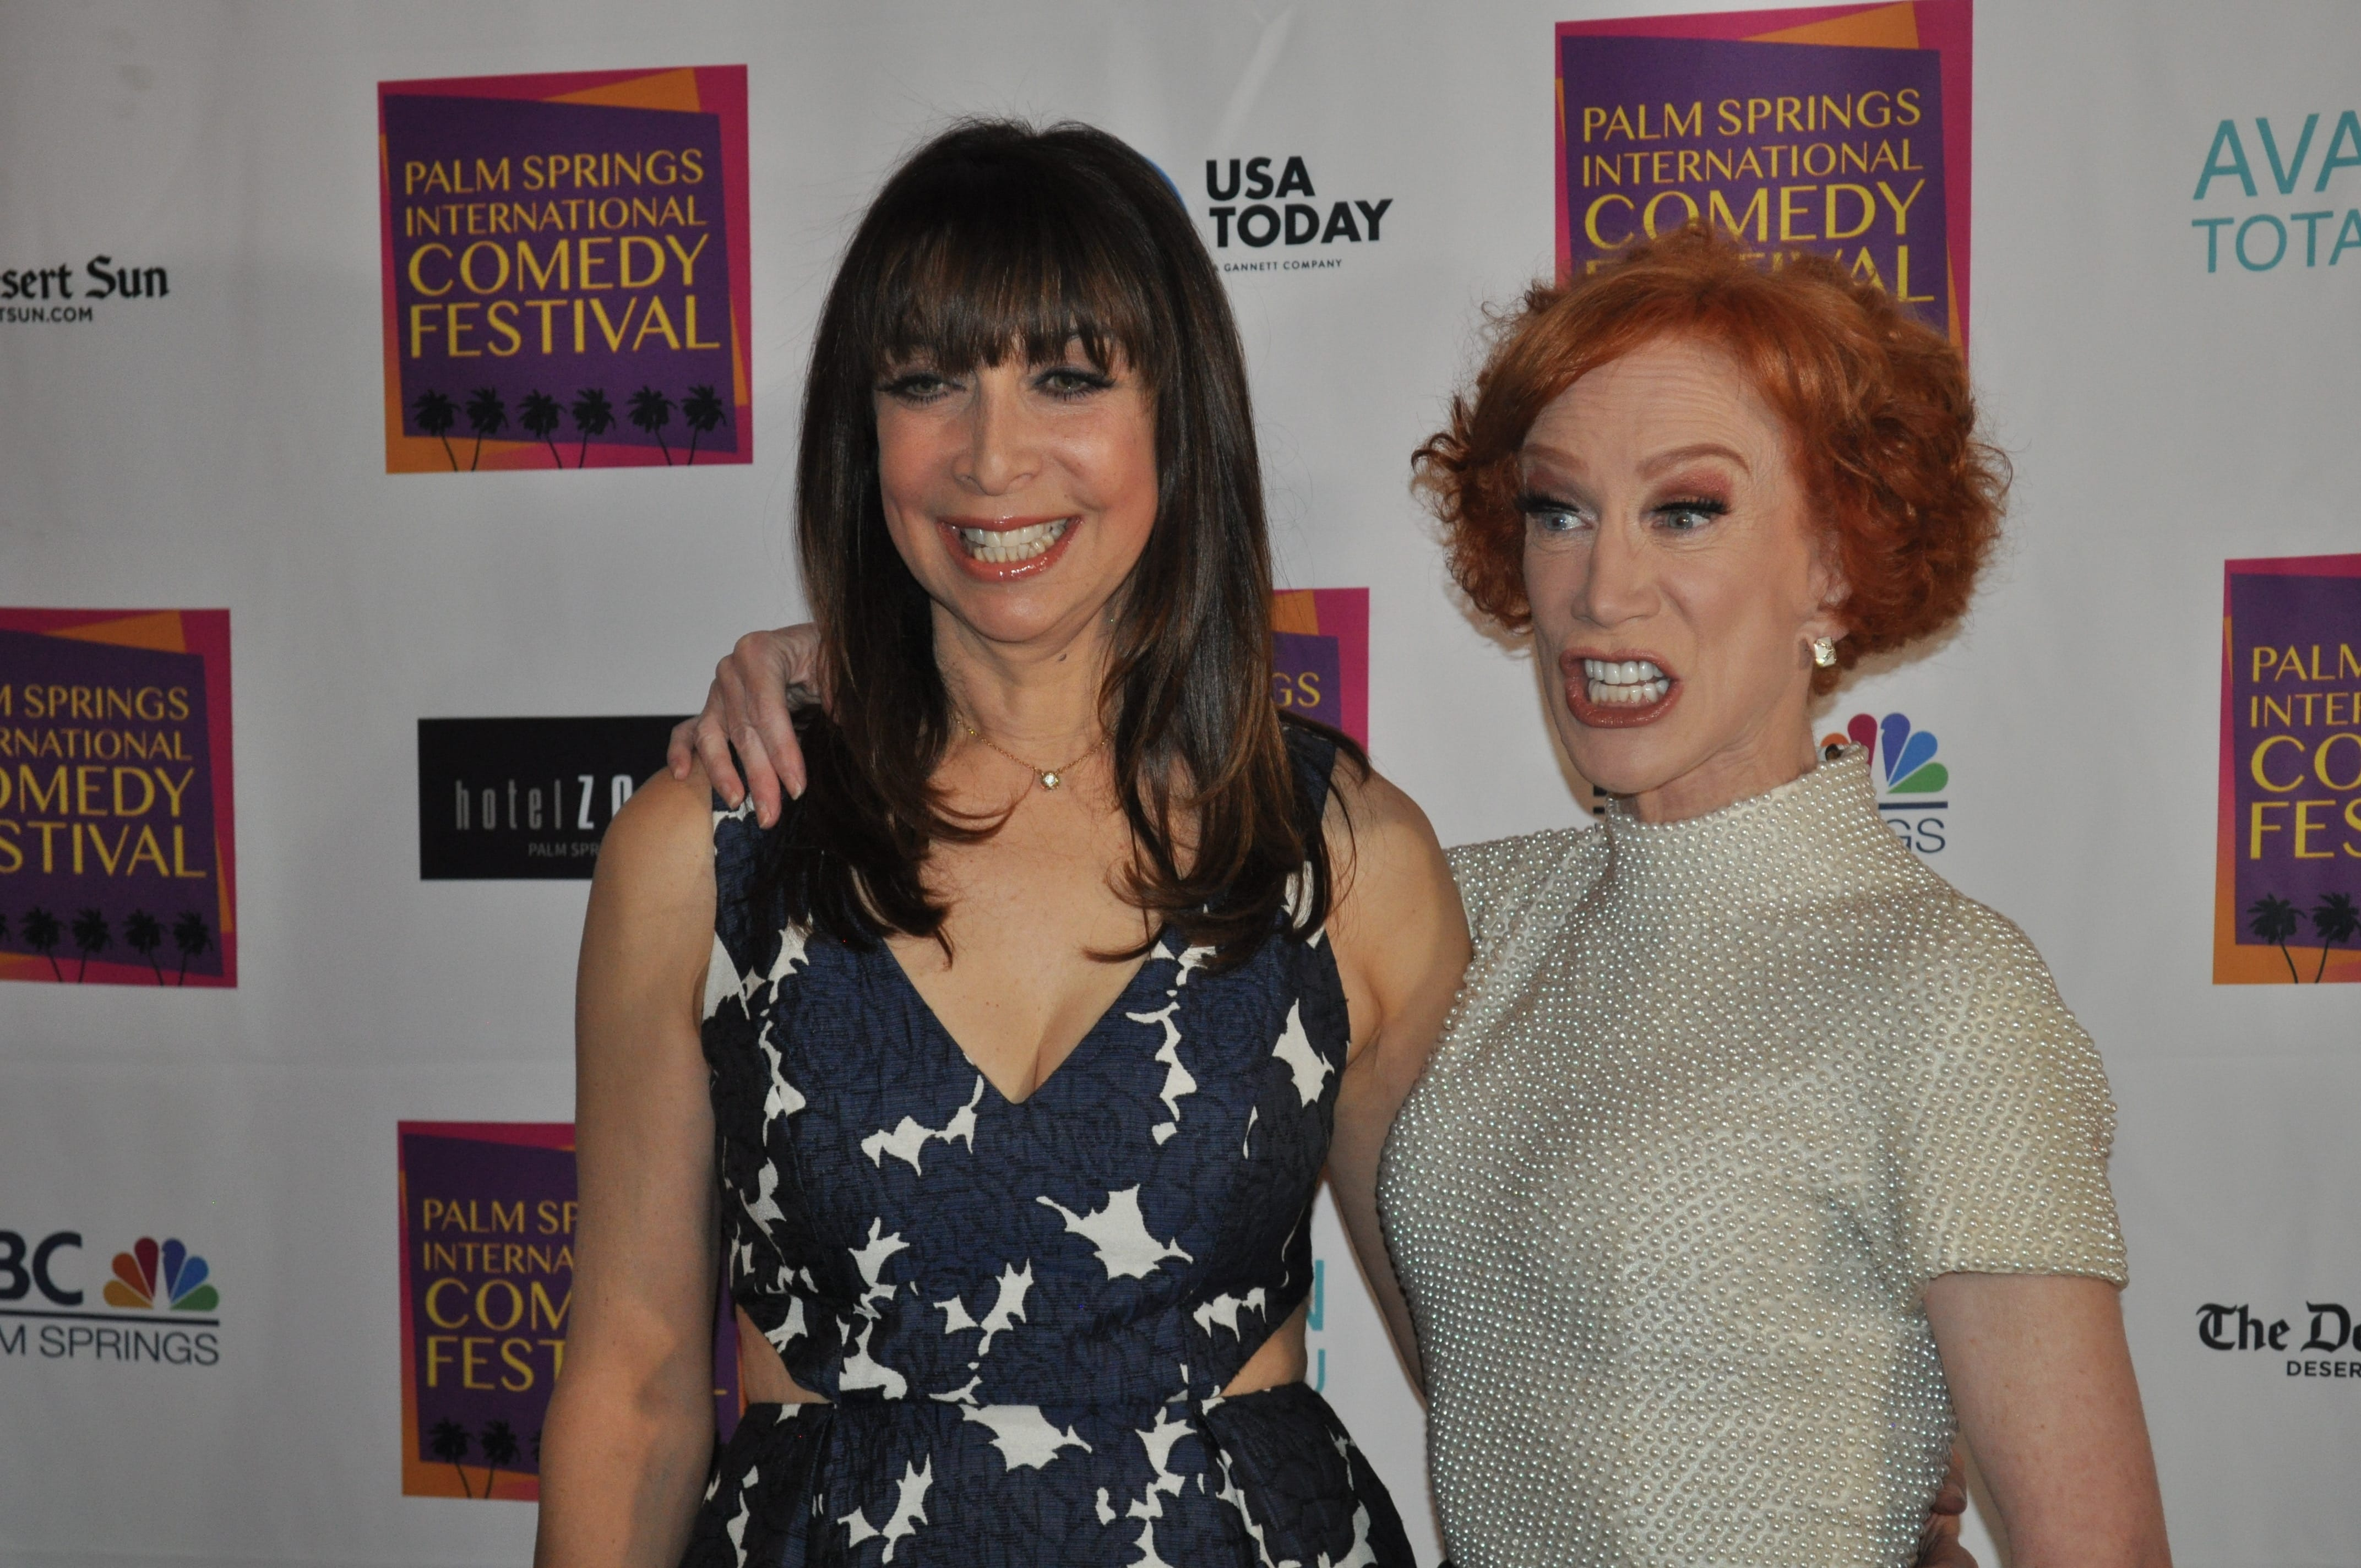 Kathy Griffin, Illeana Douglas Headline Palm Springs International Comedy Festival Gala